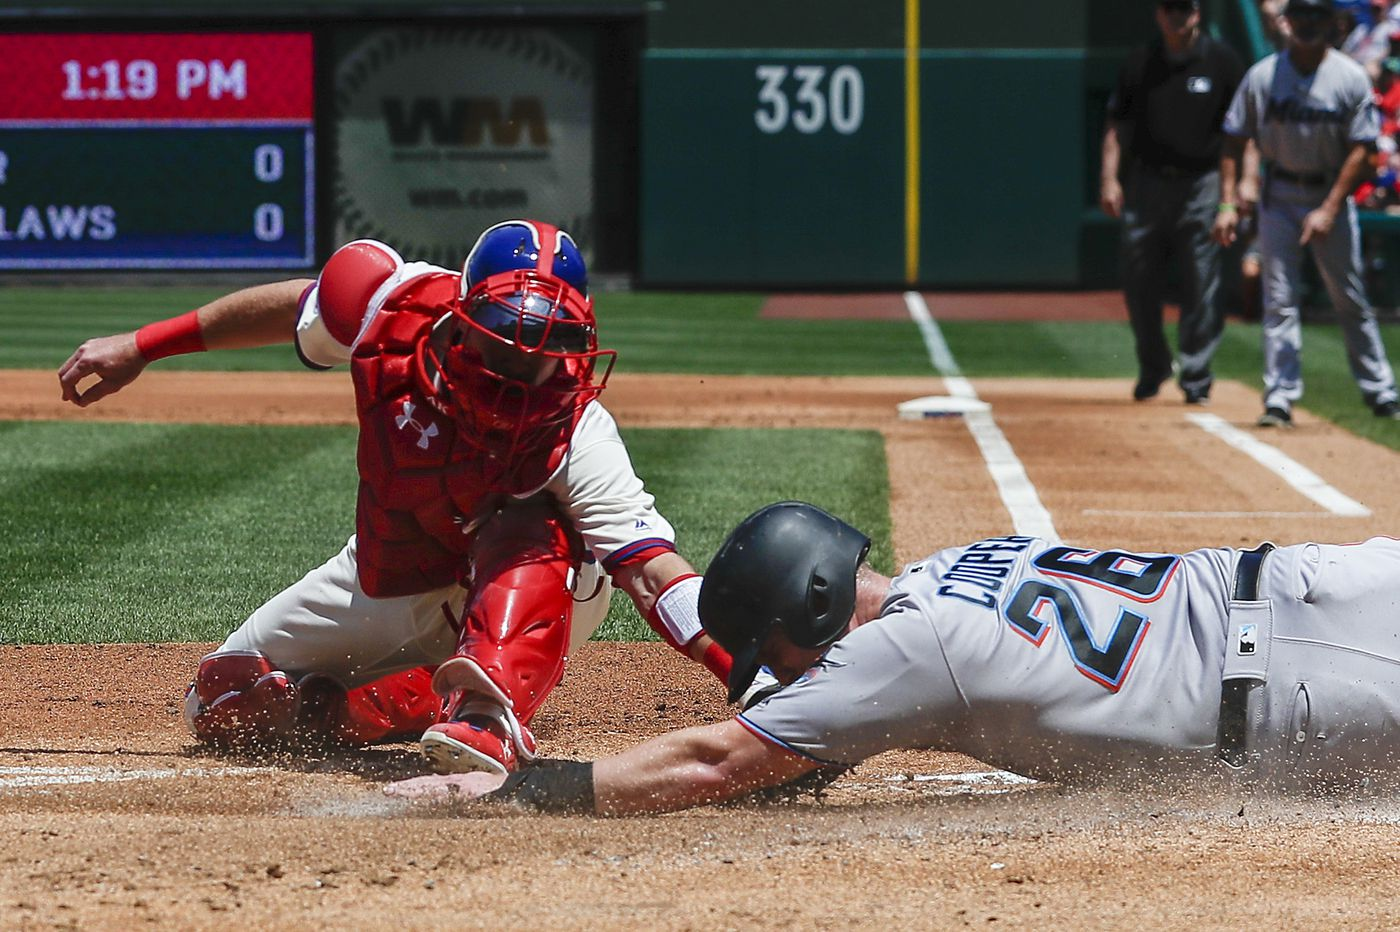 Phillies' losing streak reaches seven games as last-place Marlins complete three-game sweep